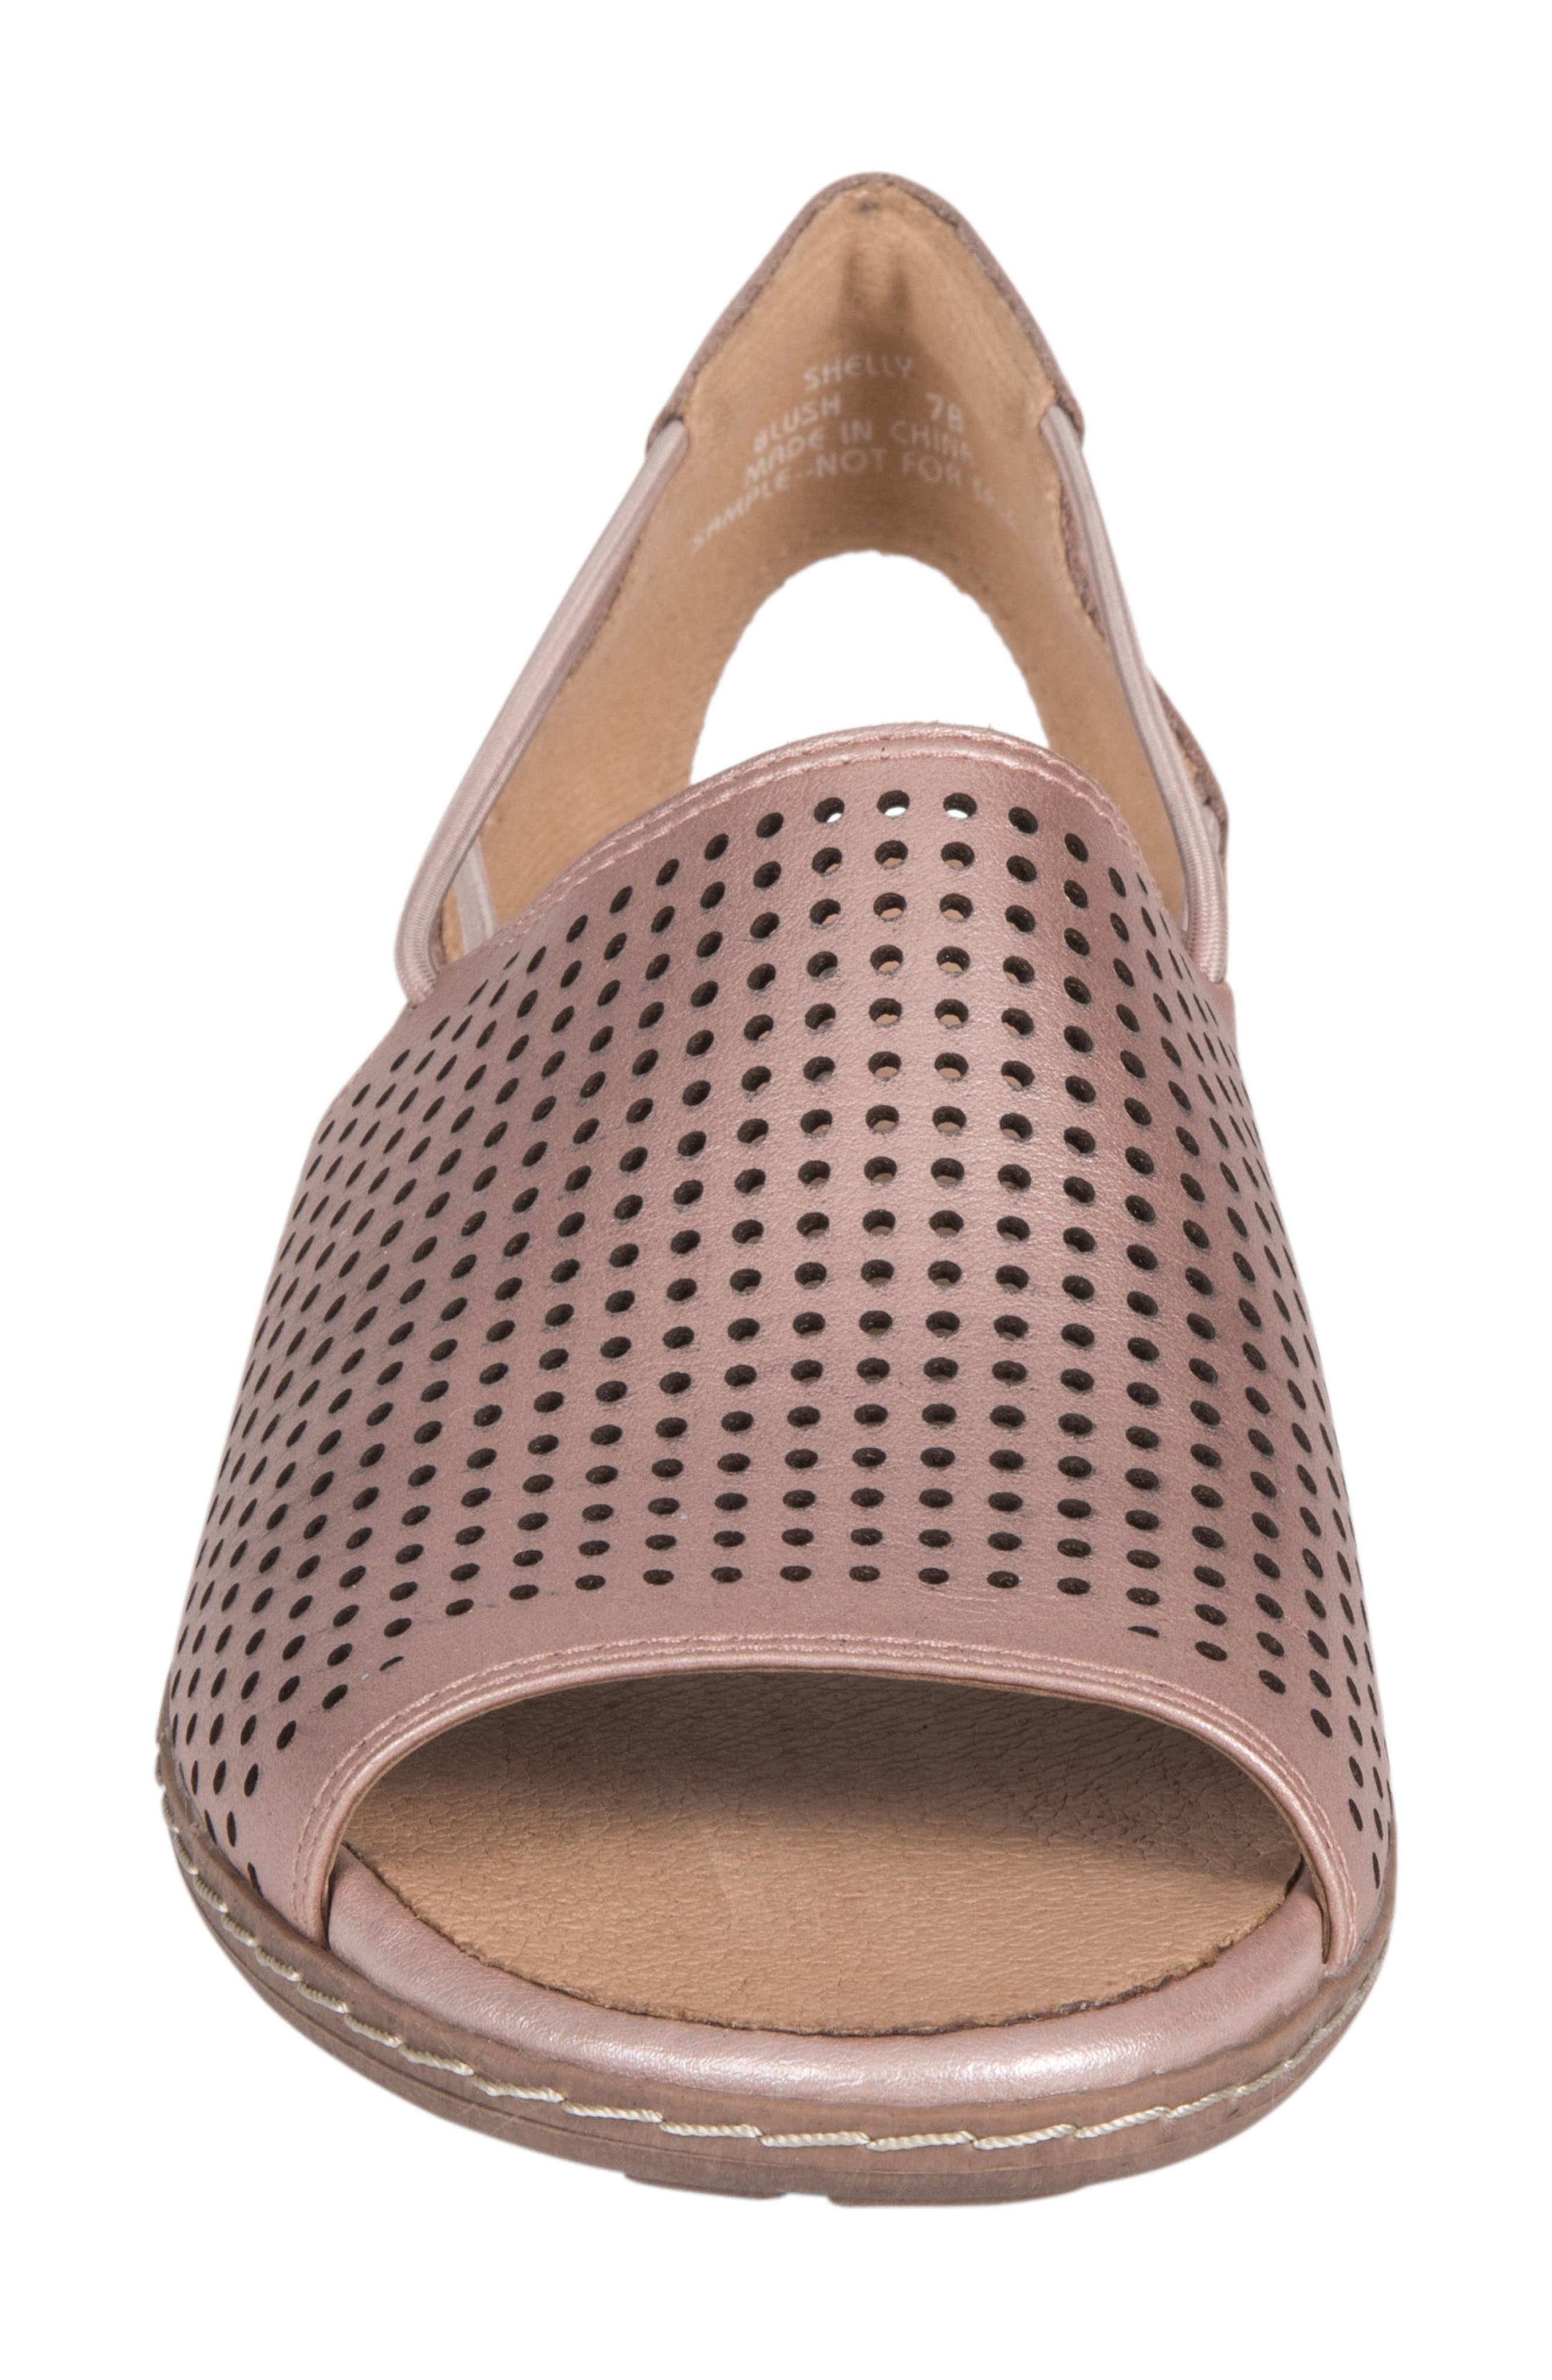 Shelly Sandal,                             Alternate thumbnail 4, color,                             BLUSH METALLIC LEATHER